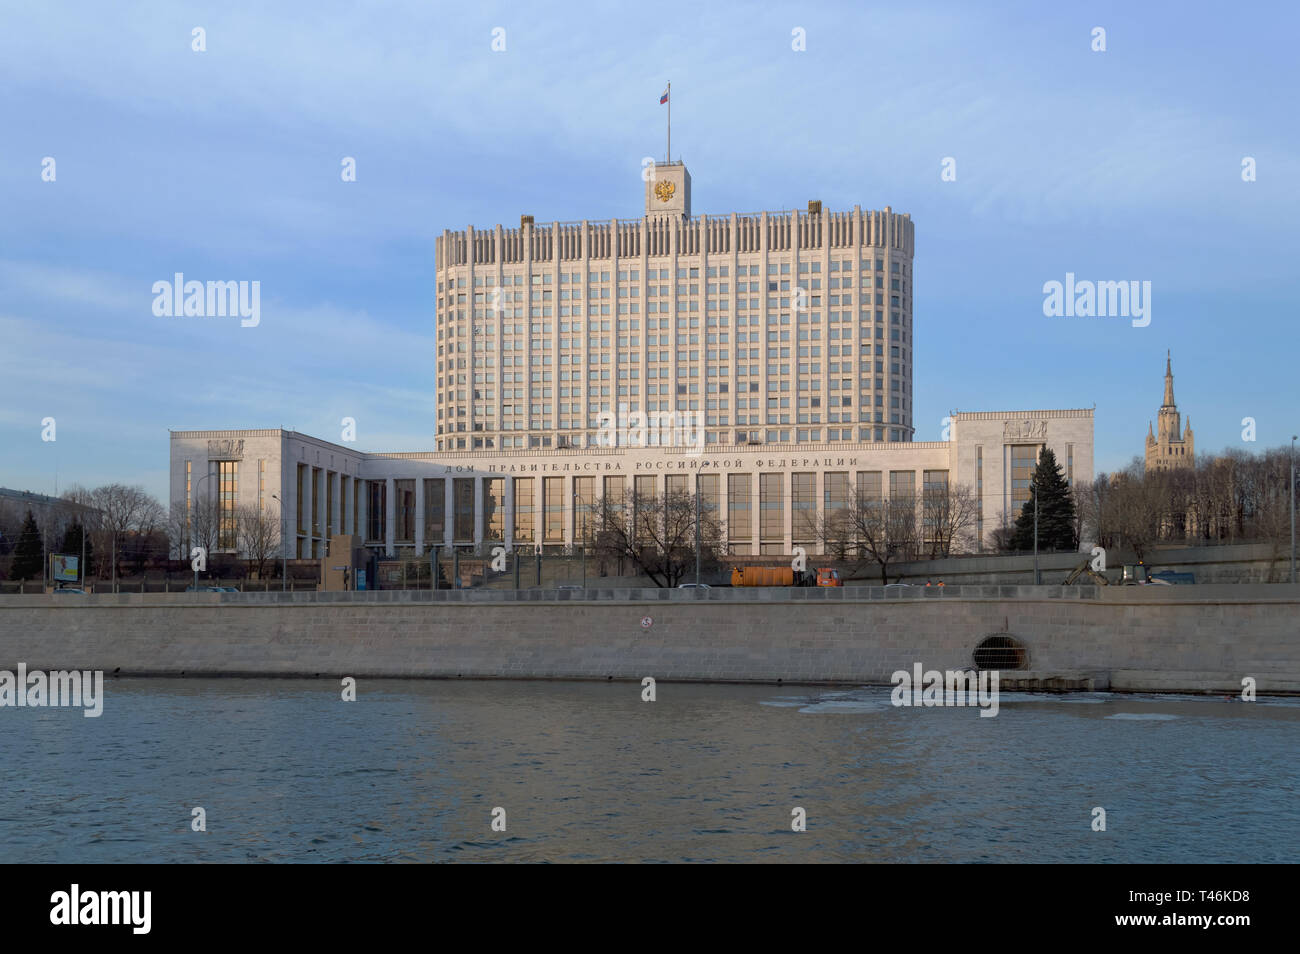 Moscow, Russia, March 09, 2017: view from Moskva river on Russian Federation Government House - Stock Image